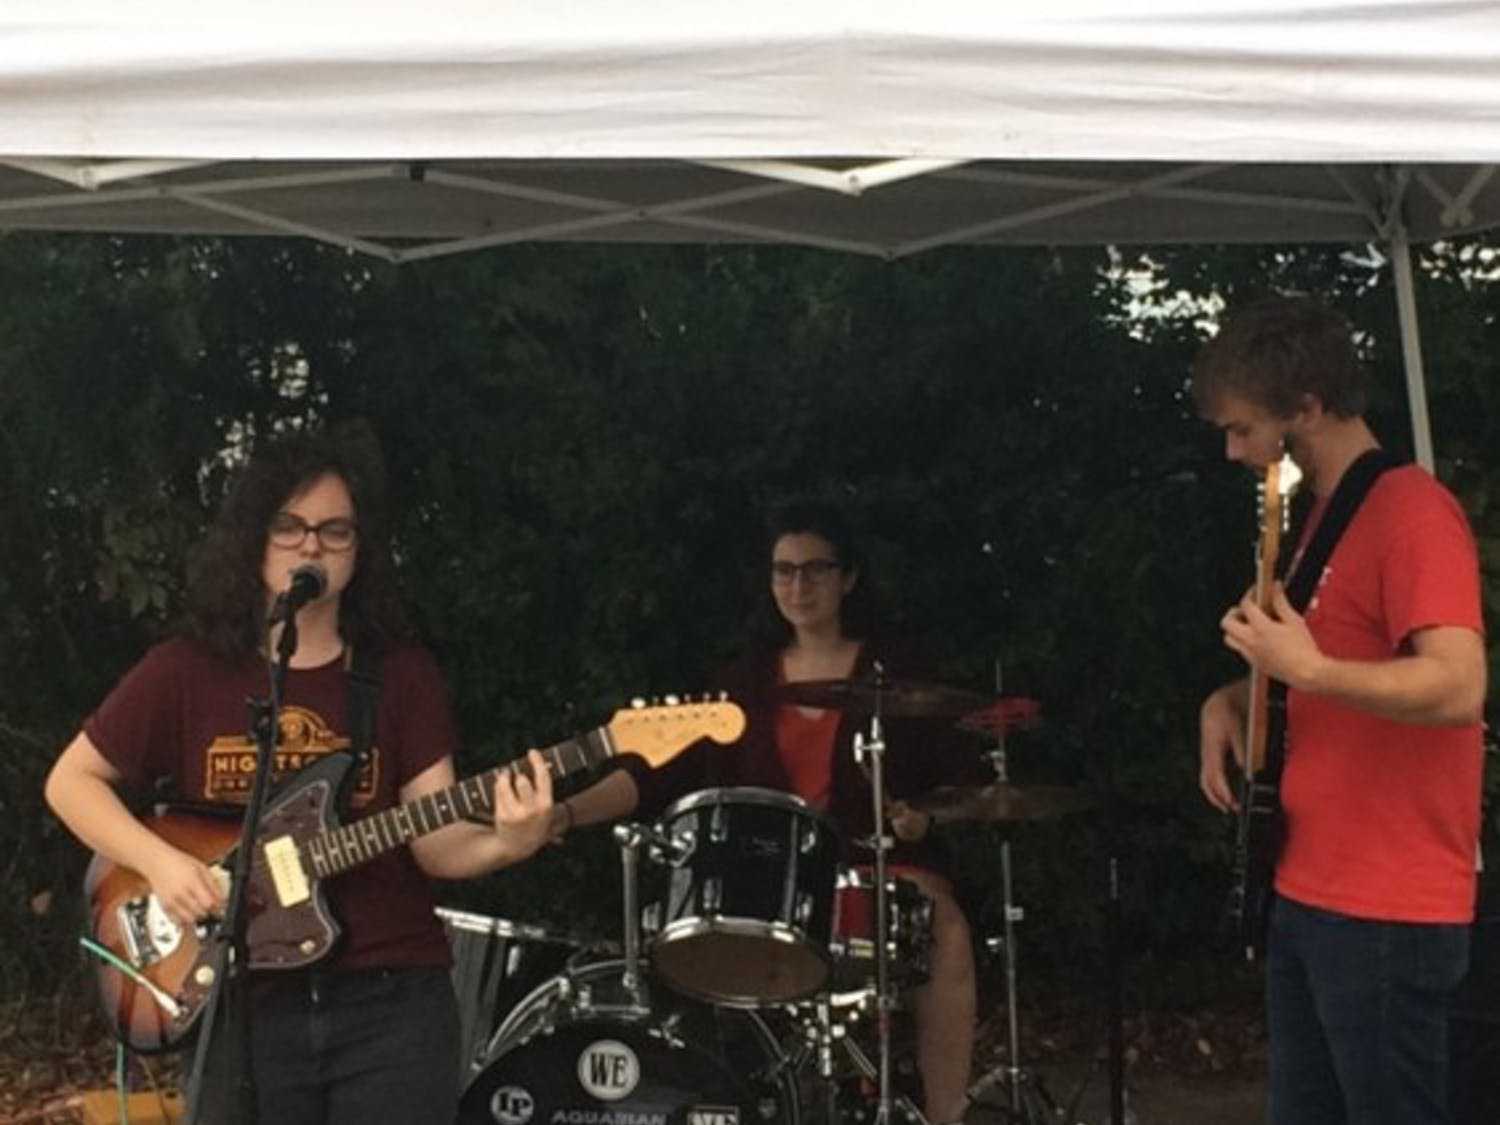 MK Rodenbough, a junior from Greensboro, played at the Carrboro Music Festival.